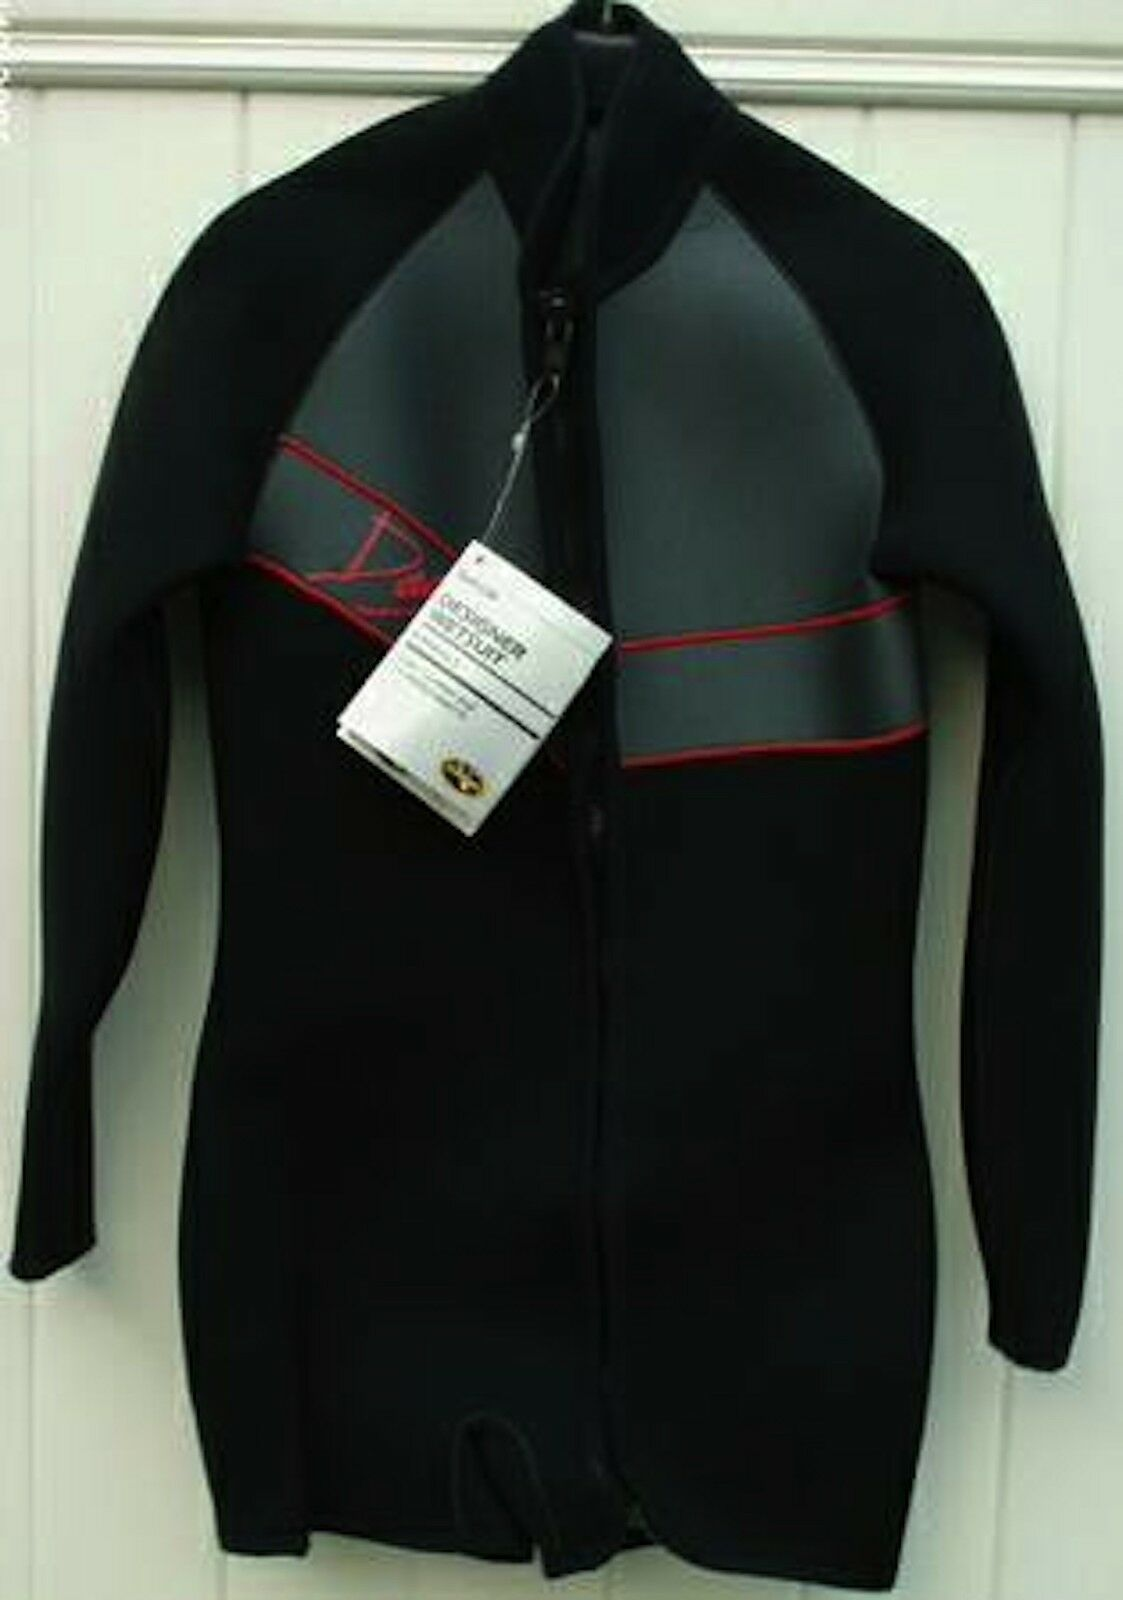 BRAND NEW  - Dacor 6.5mm Designer Dive Wetsuit - 2 piece - Small  brand on sale clearance